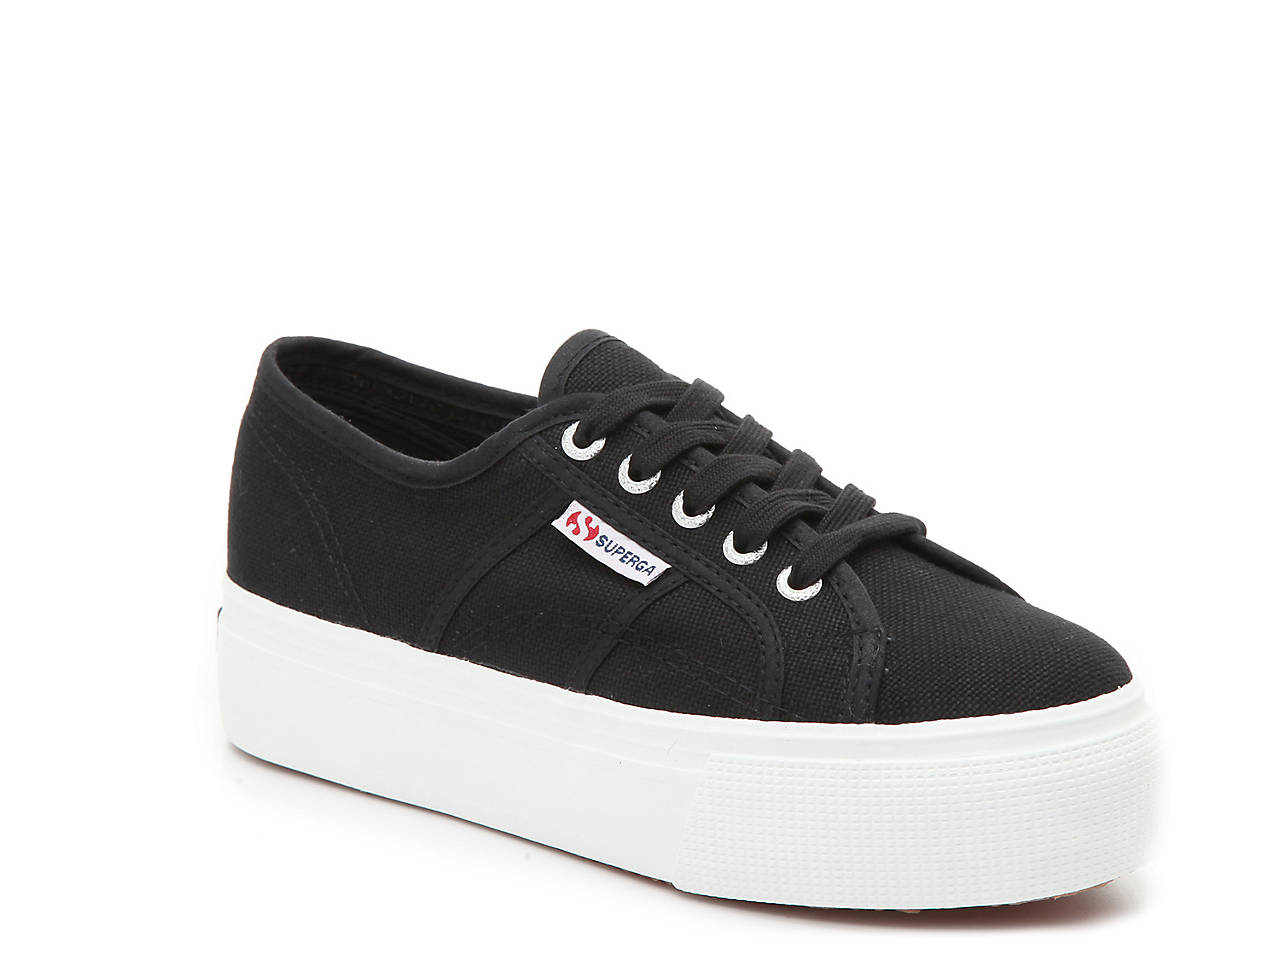 ca631dc0c1019 Superga 2790 Platform Sneaker Women's Shoes | DSW